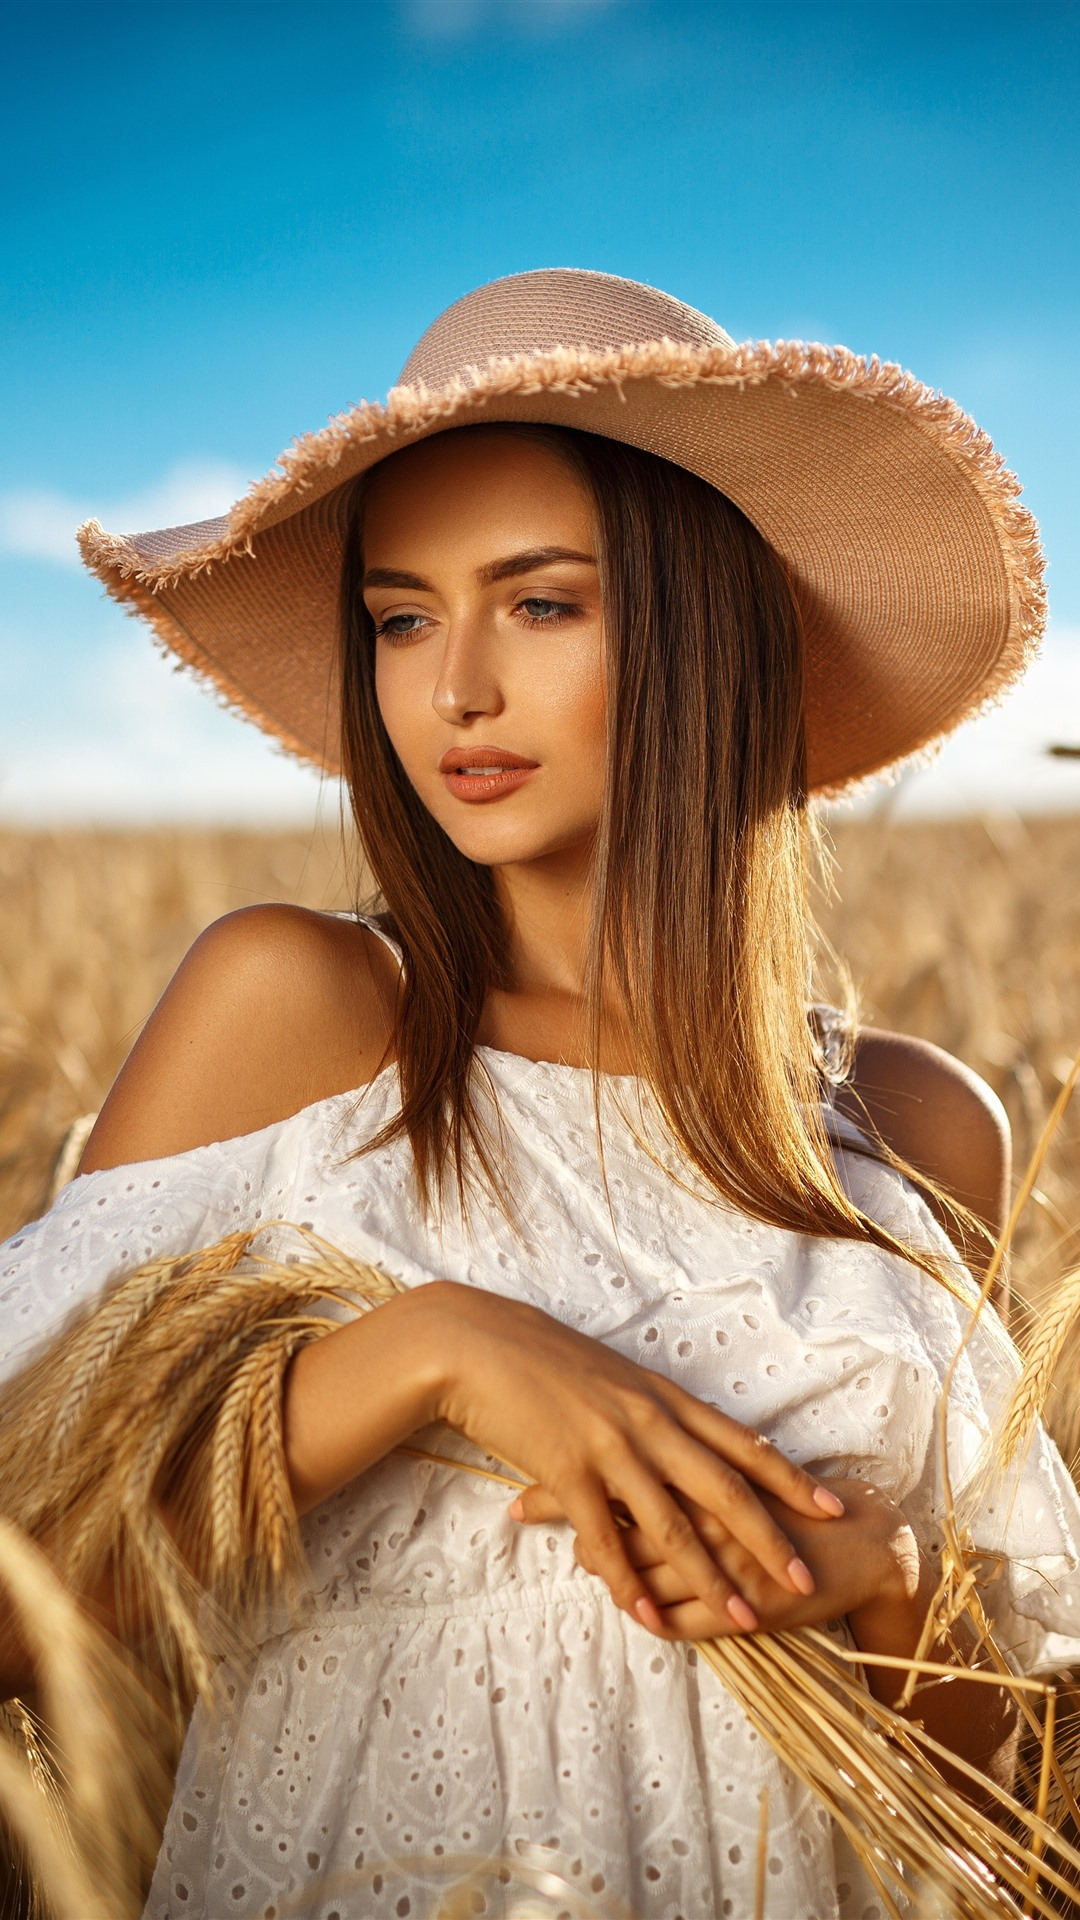 Piano Wallpaper Iphone Brown Hair Girl Hat Wheat Field Summer 1242x2688 Iphone